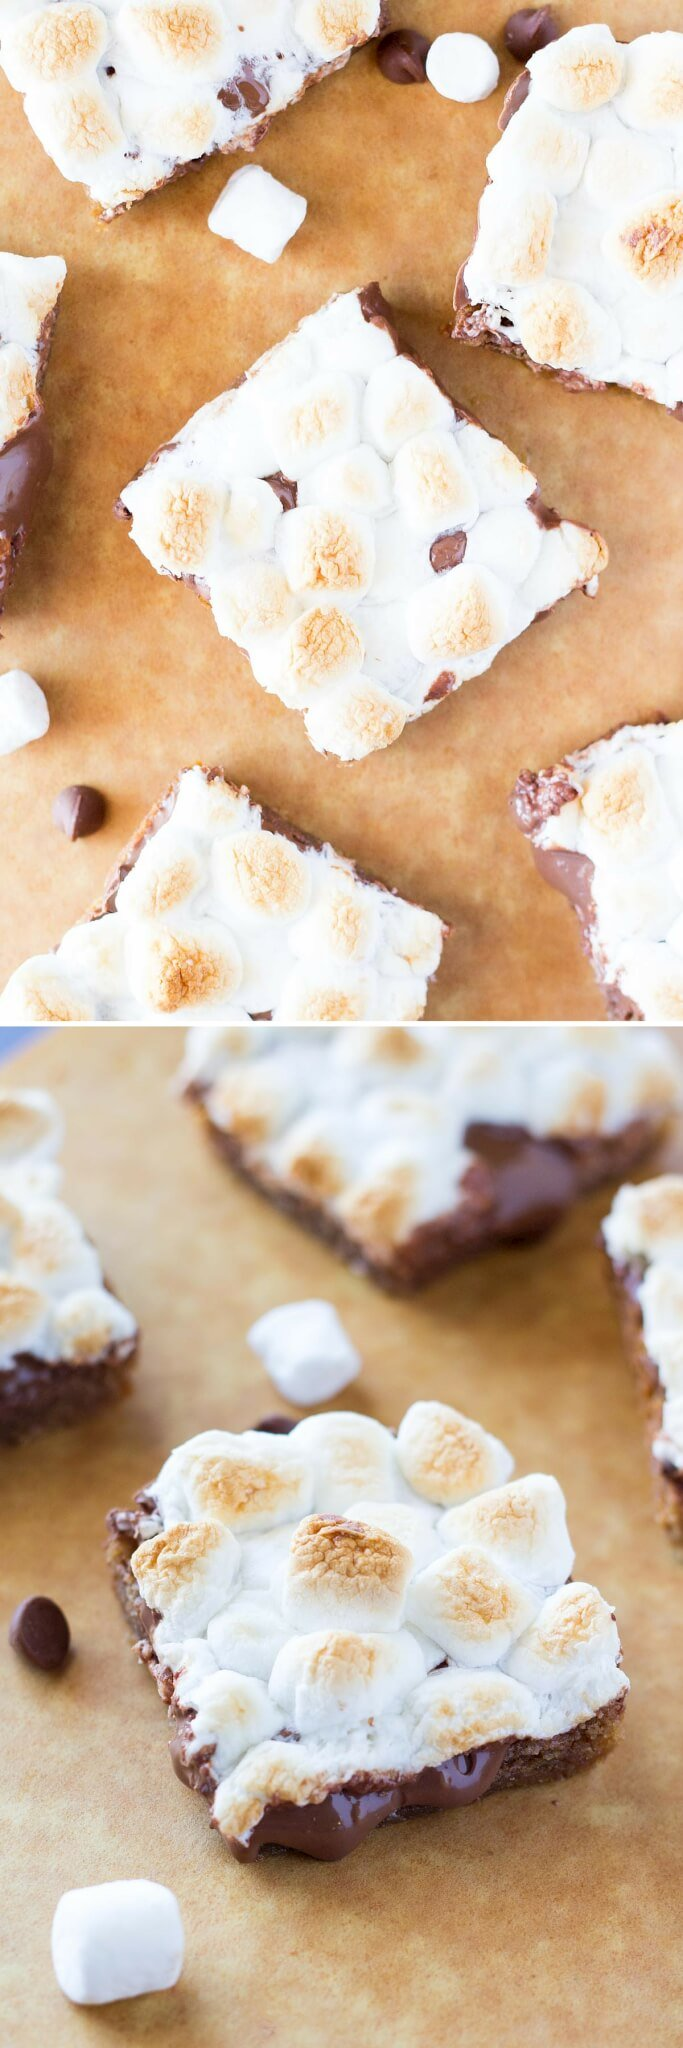 Chewy, gooey, Super Easy S'mores Bars - a blondie-like base, melted milk chocolate & toasted marshmallows come together in these amazing treats! Ready in no time and no mixer required!